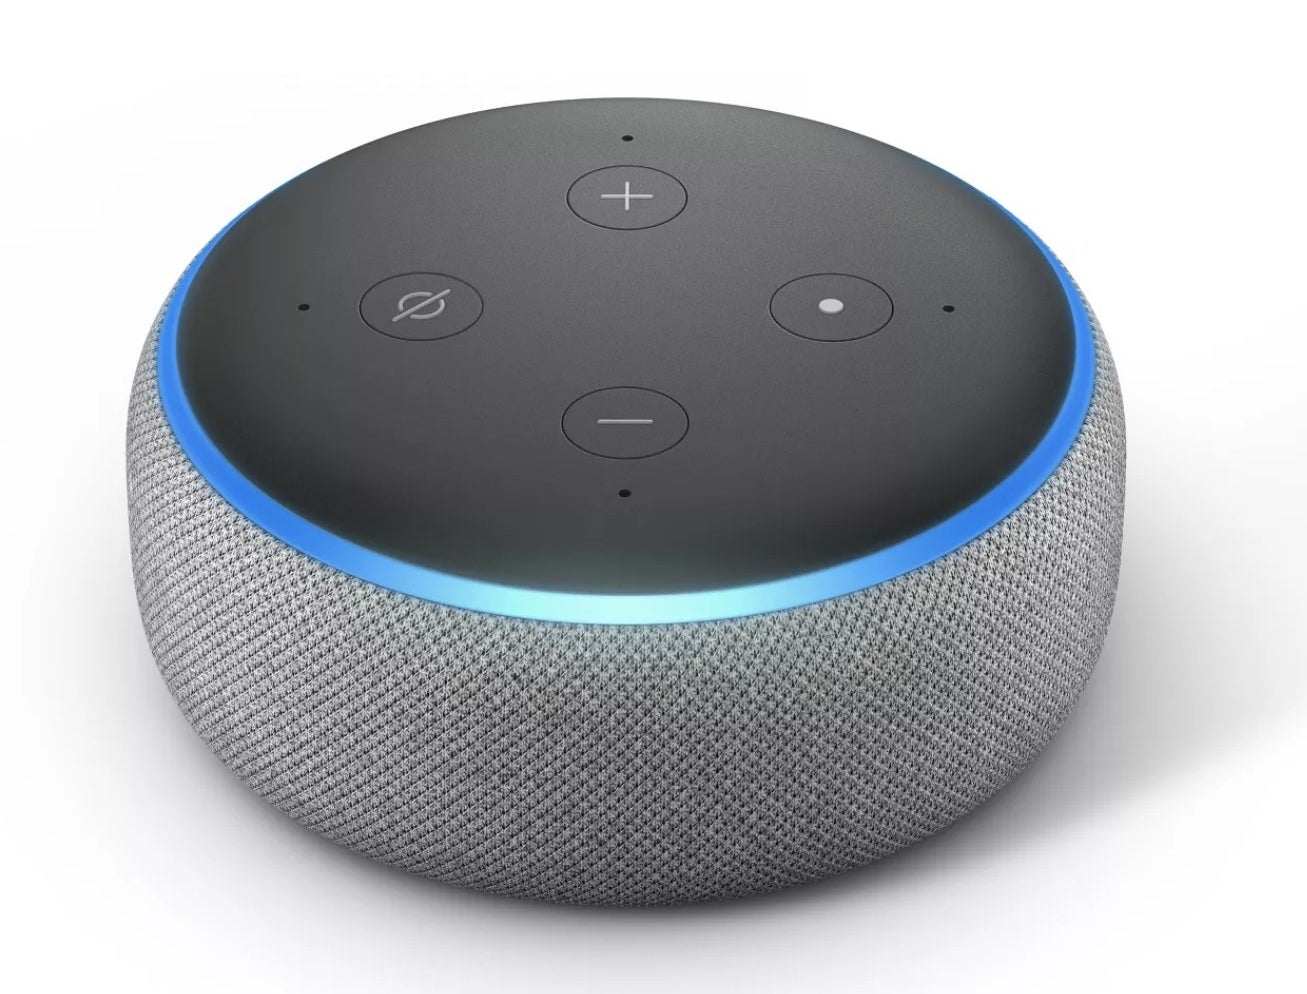 A round speaker with buttons for changing the volume and waking Alexa with a blue ring lit up